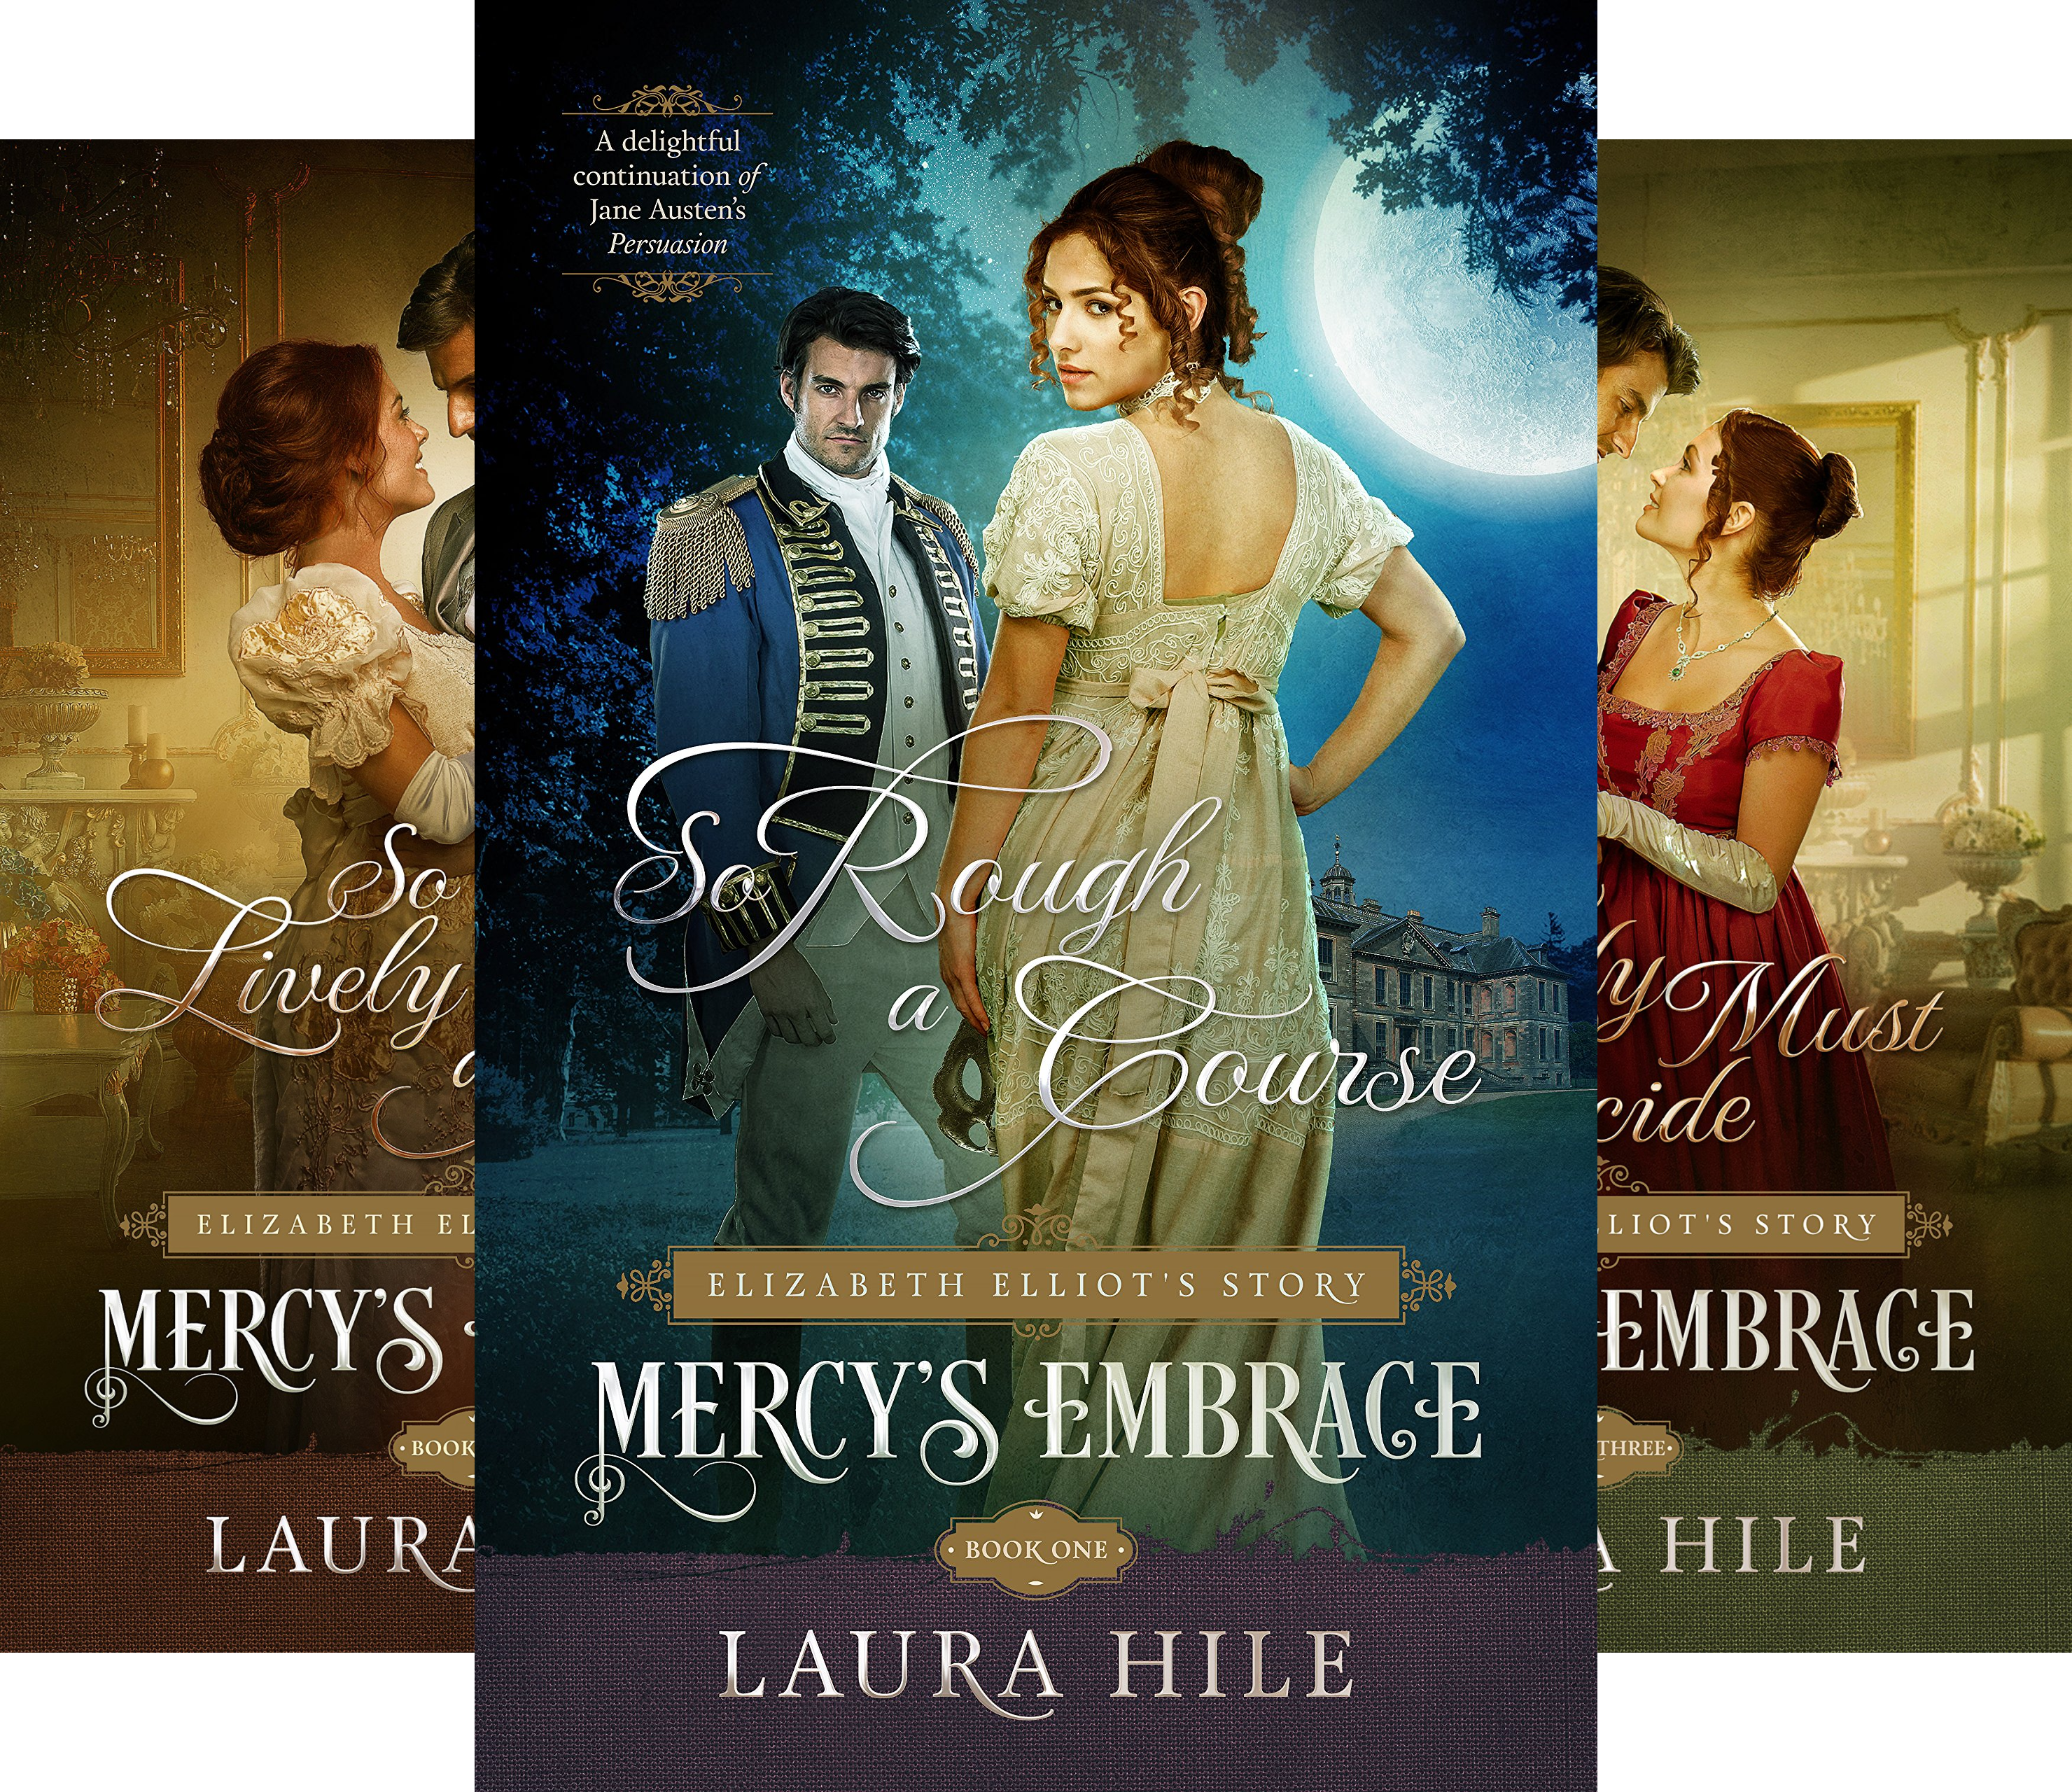 Mercy's Embrace (3 Book Series)